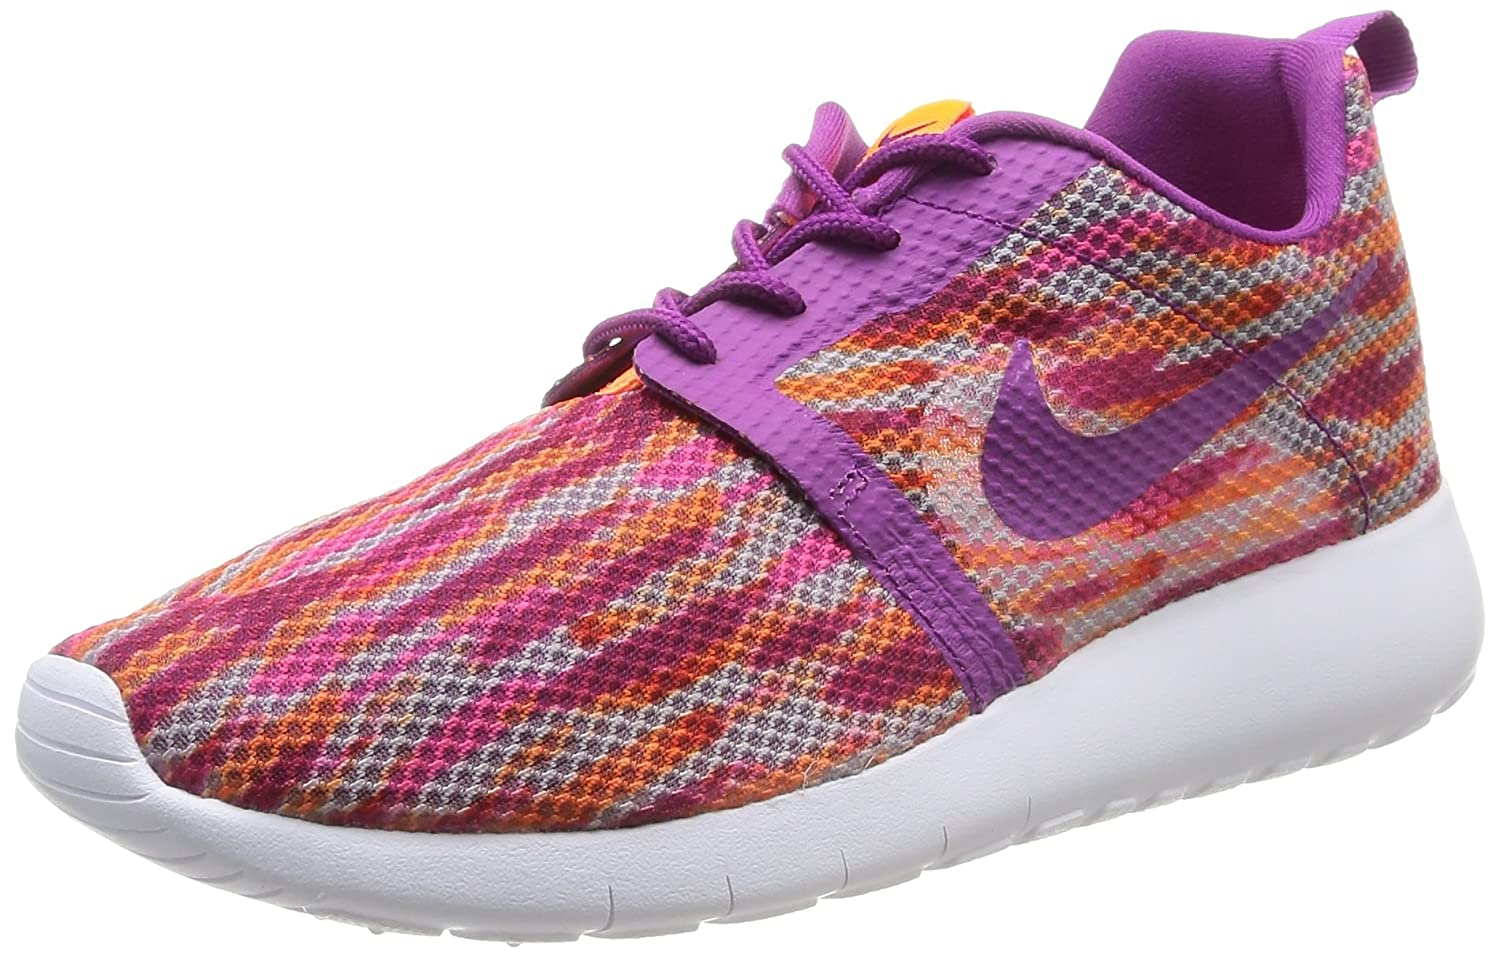 huge selection of 2da0b d809c Amazon.com   Nike Roshe one Flight Weight (GS) Trainers 705486 Sneakers  Shoes   Running